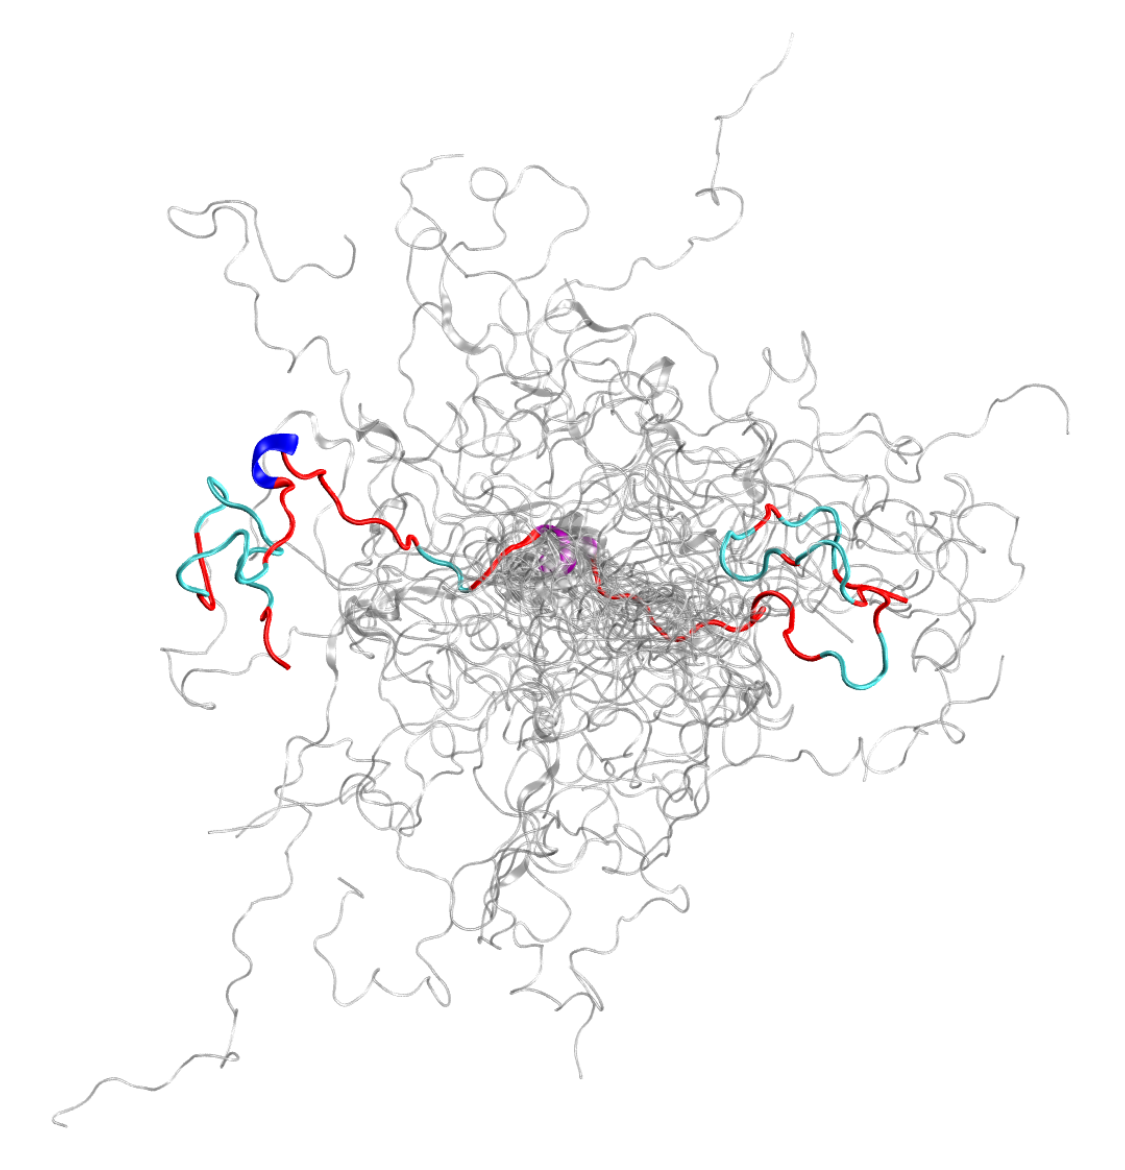 The configurational ensemble (a collection of 3D structures) of an intrinsically disordered protein, the N-terminal of c-Src kinase, which is a major signaling protein in humans.